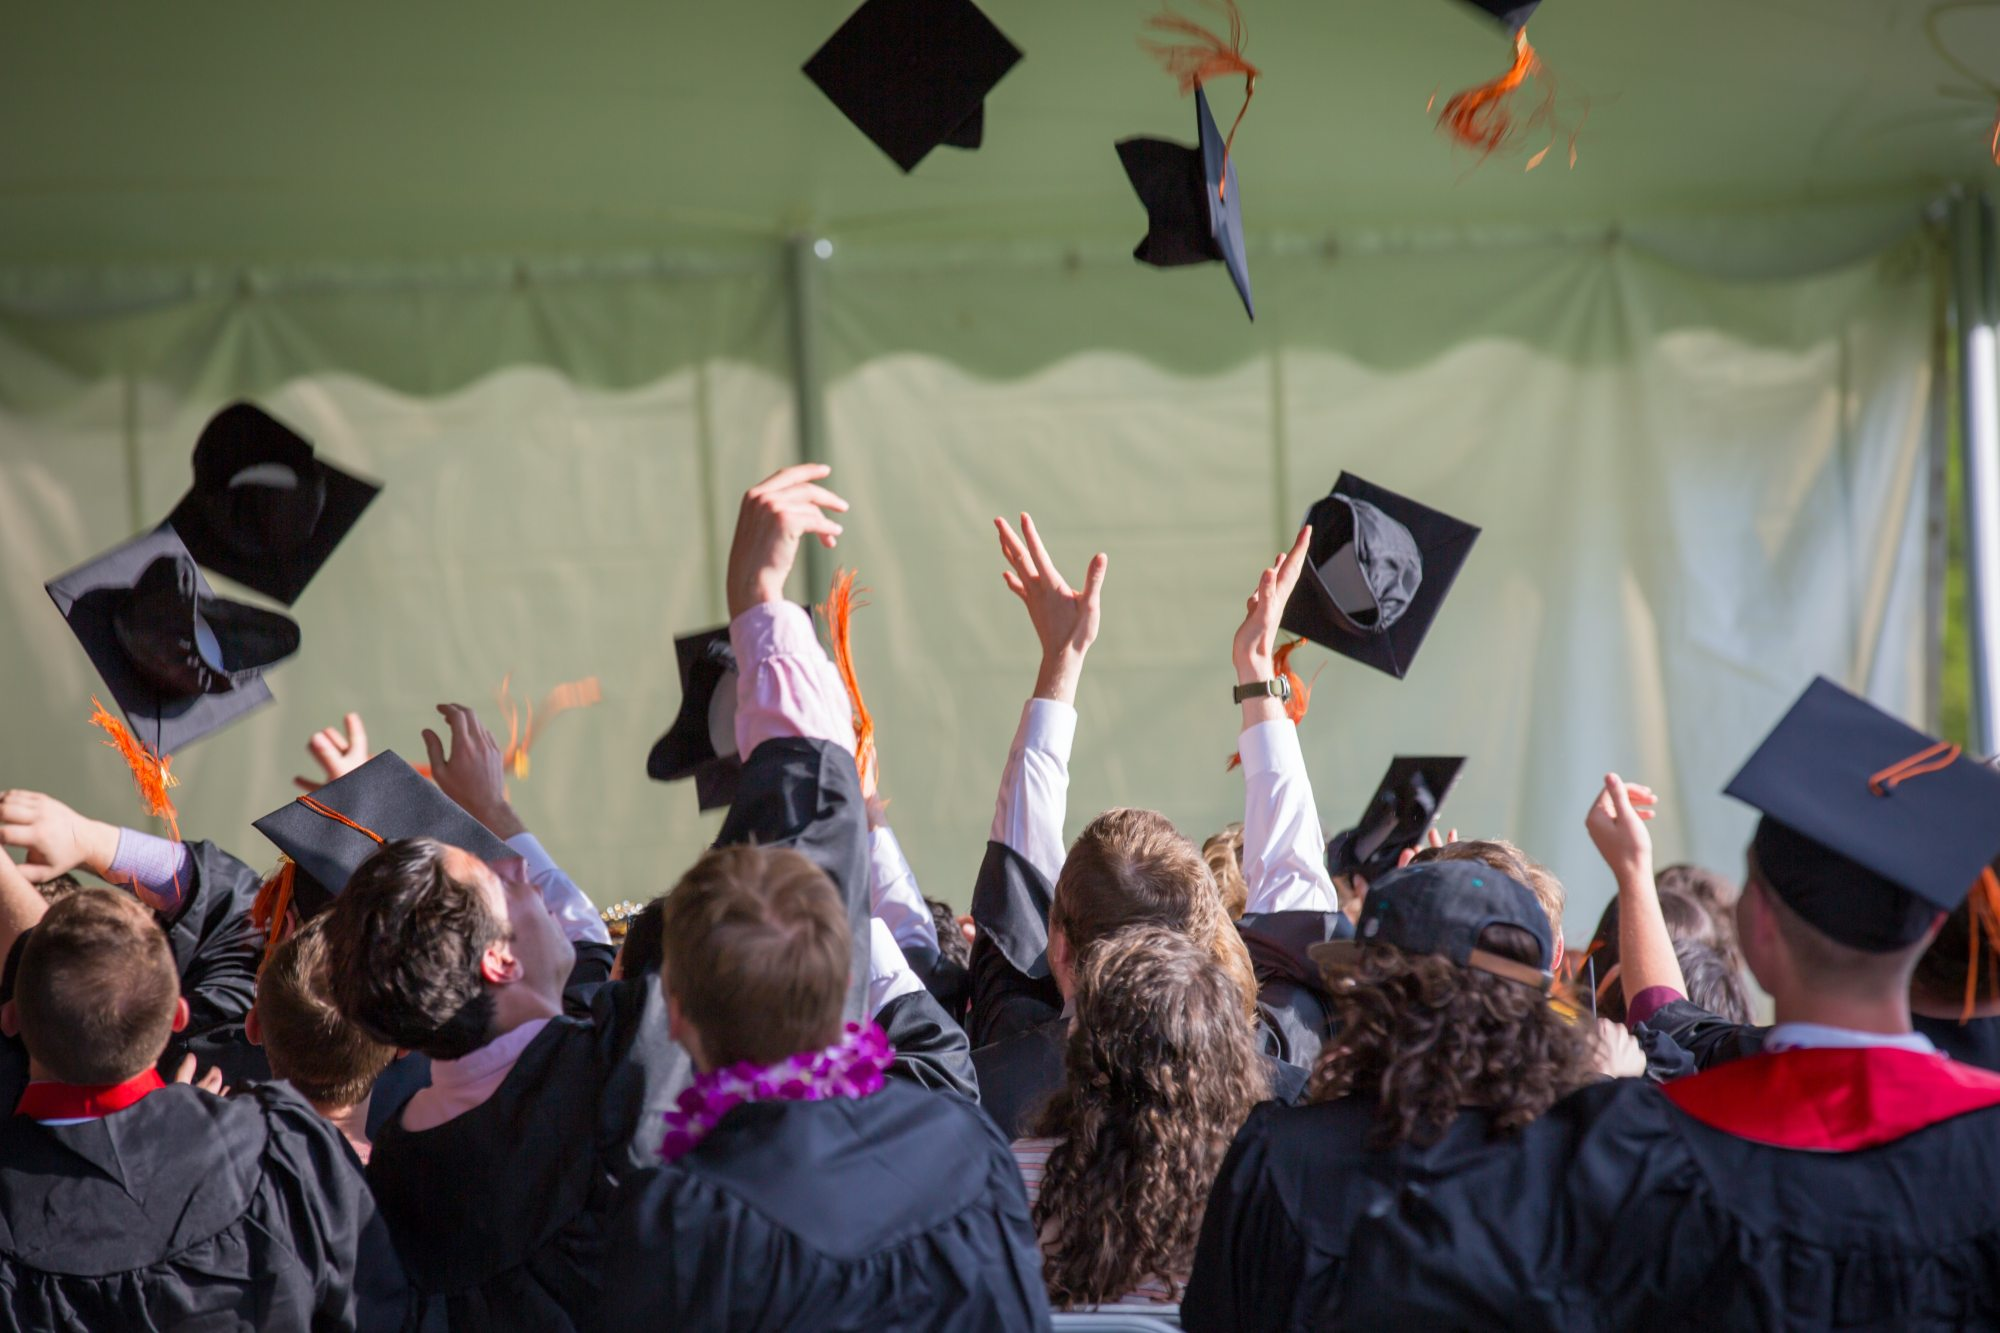 Graduates tossing their hats up at graduation